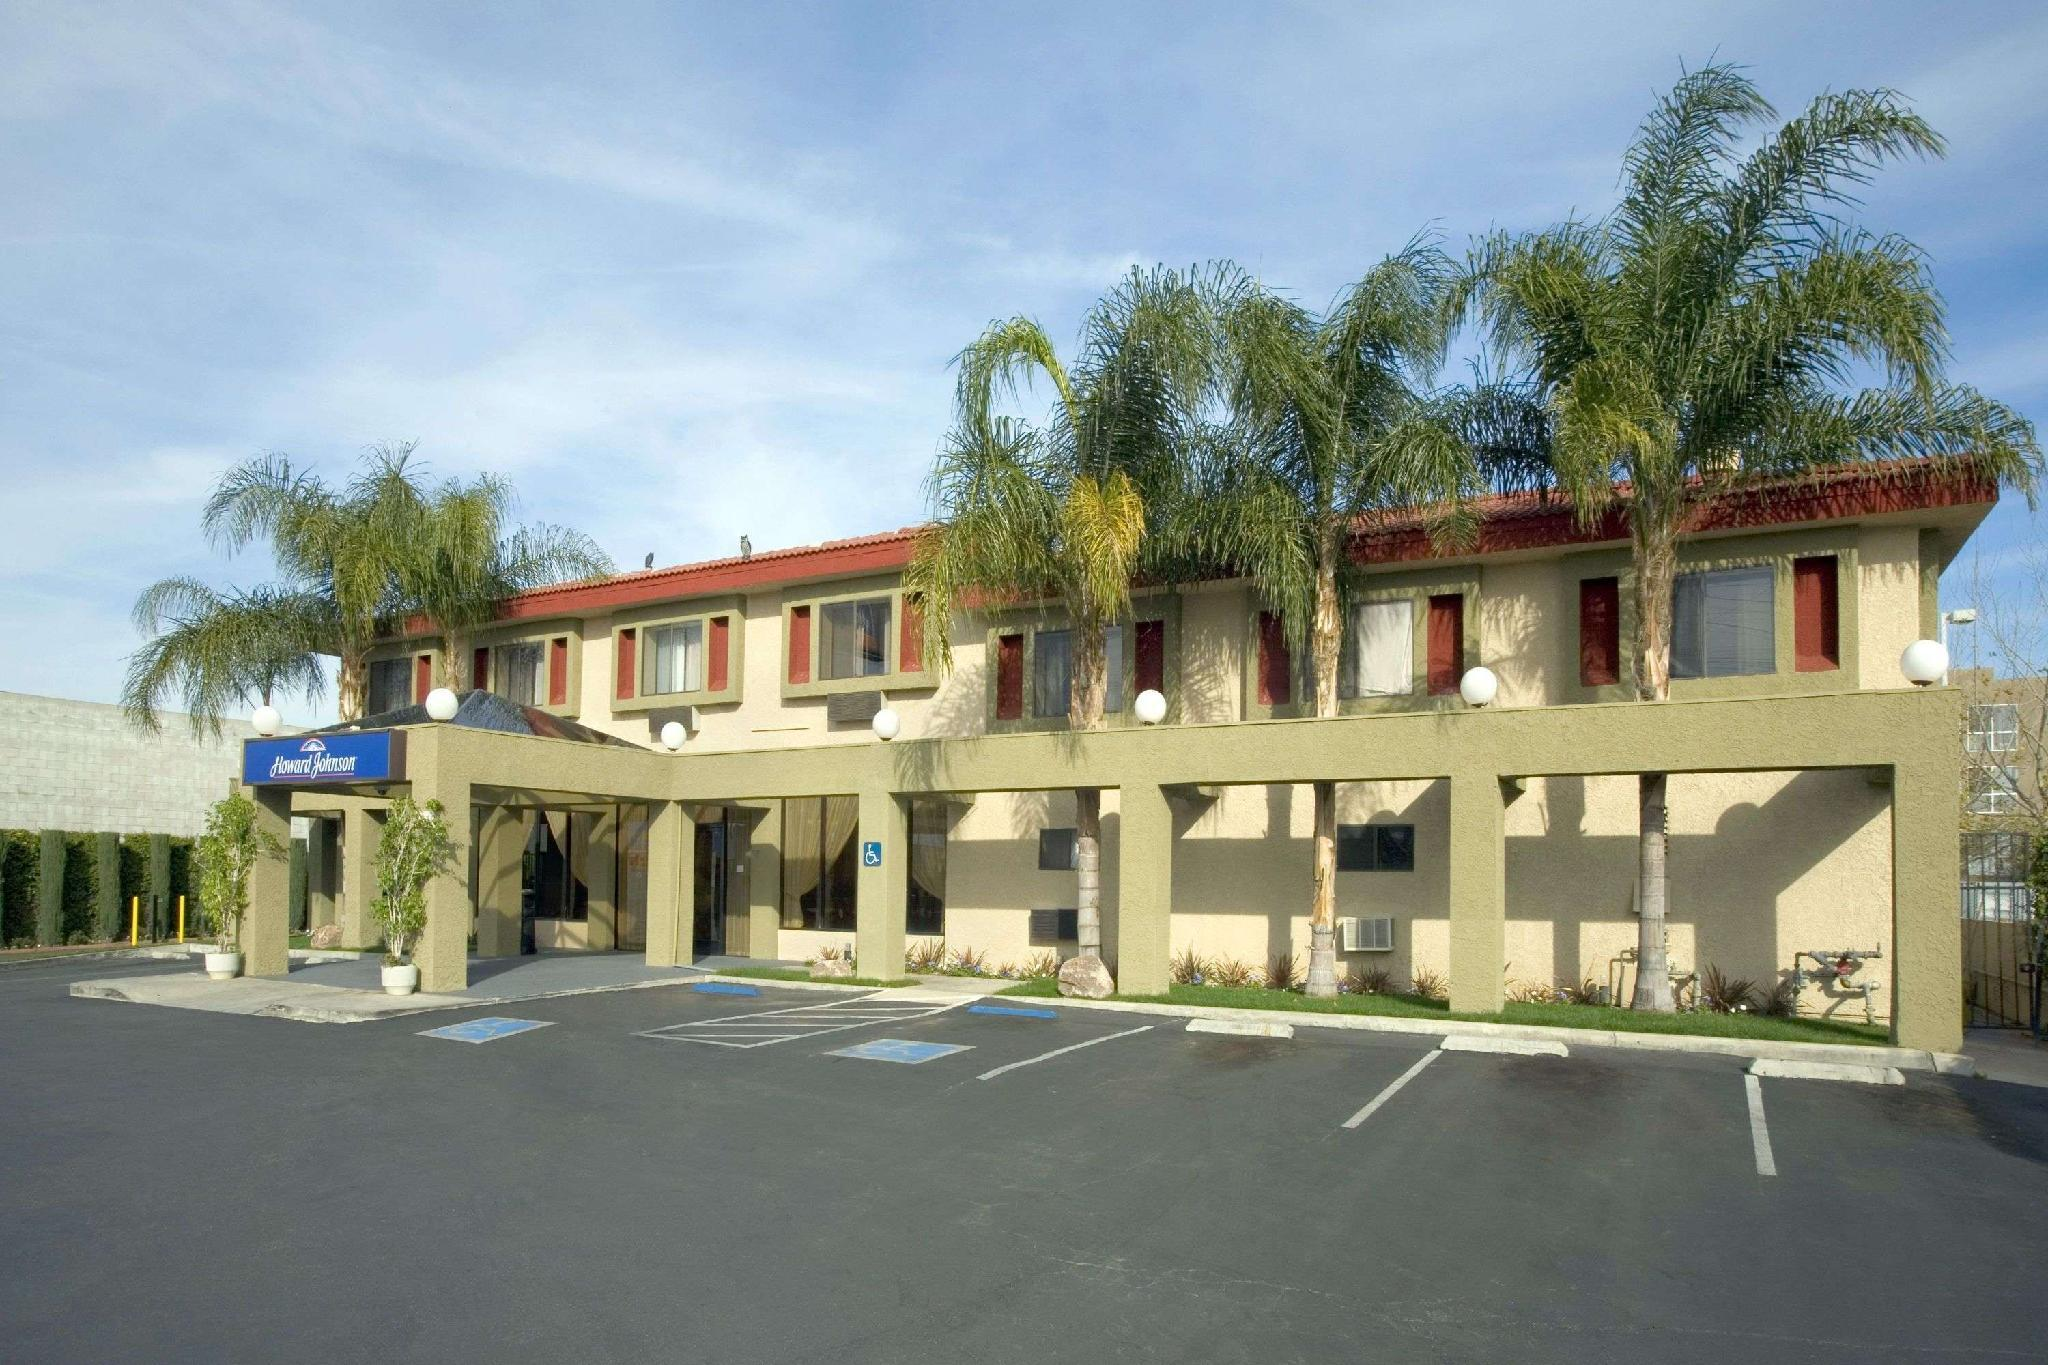 Howard Johnson Hotel Suites By Wyndham Reseda Los Angeles